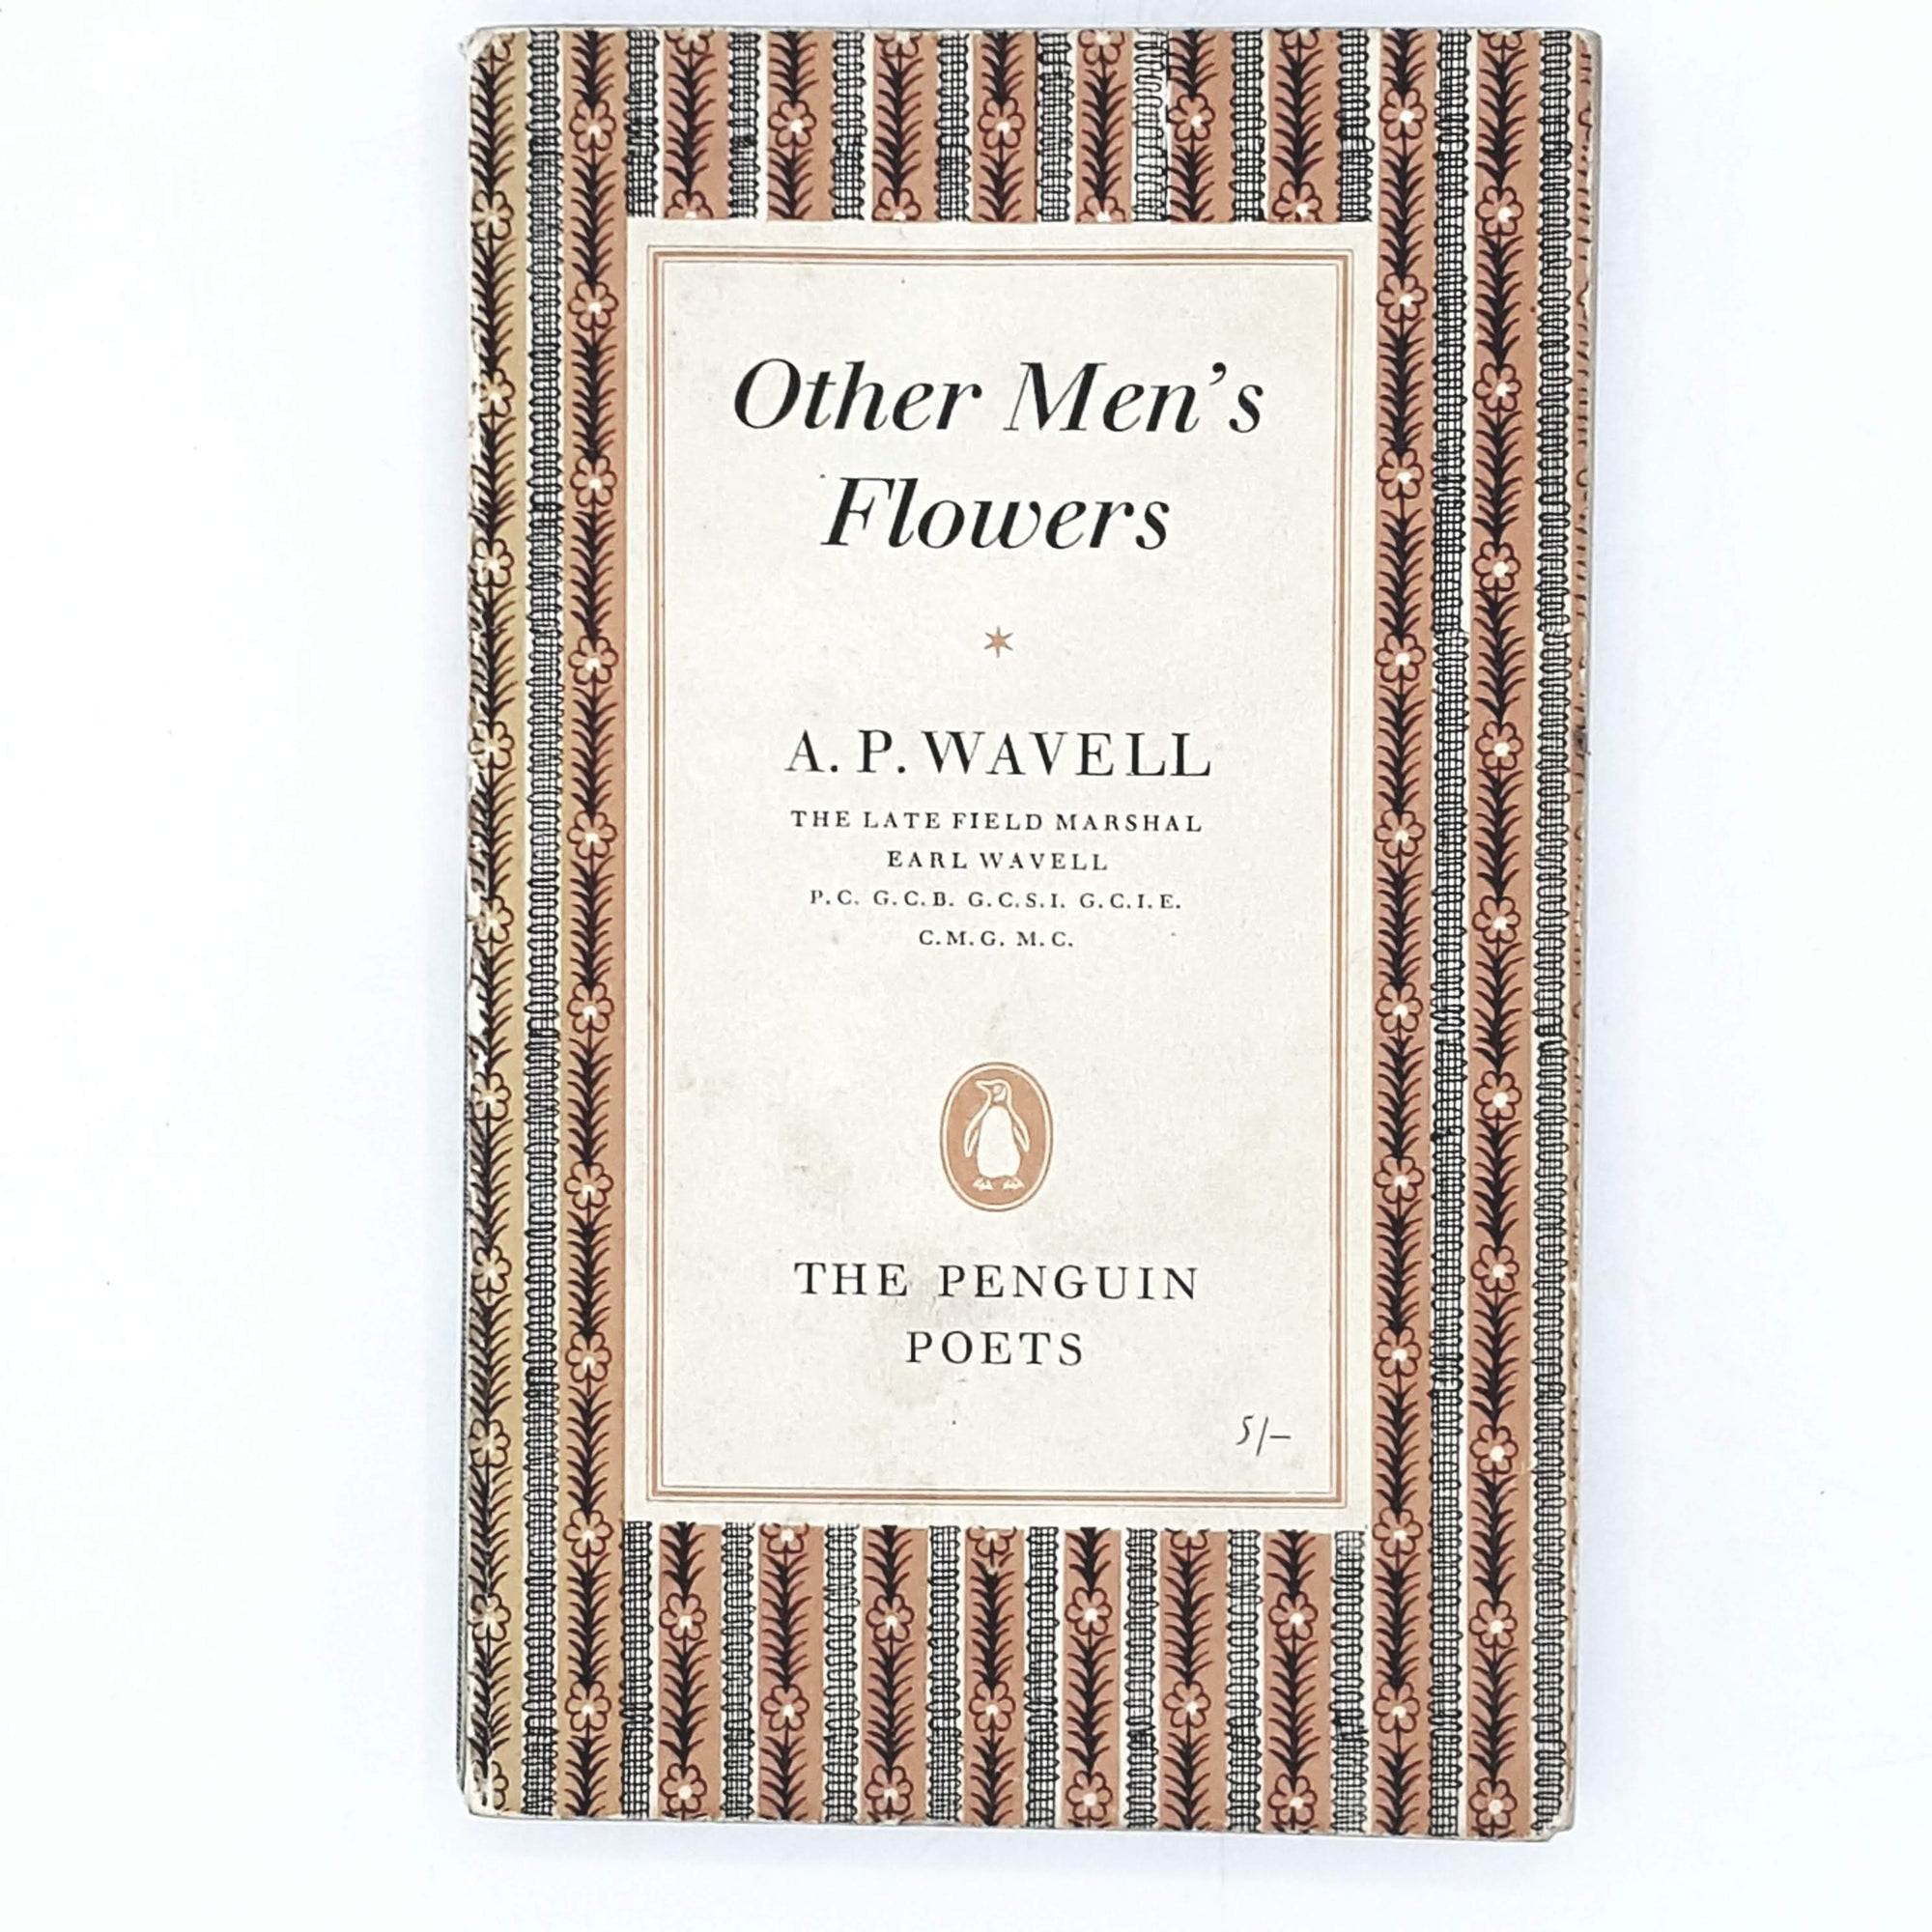 Vintage Penguin Other Men's Flowers by A. P. Wavell 1960